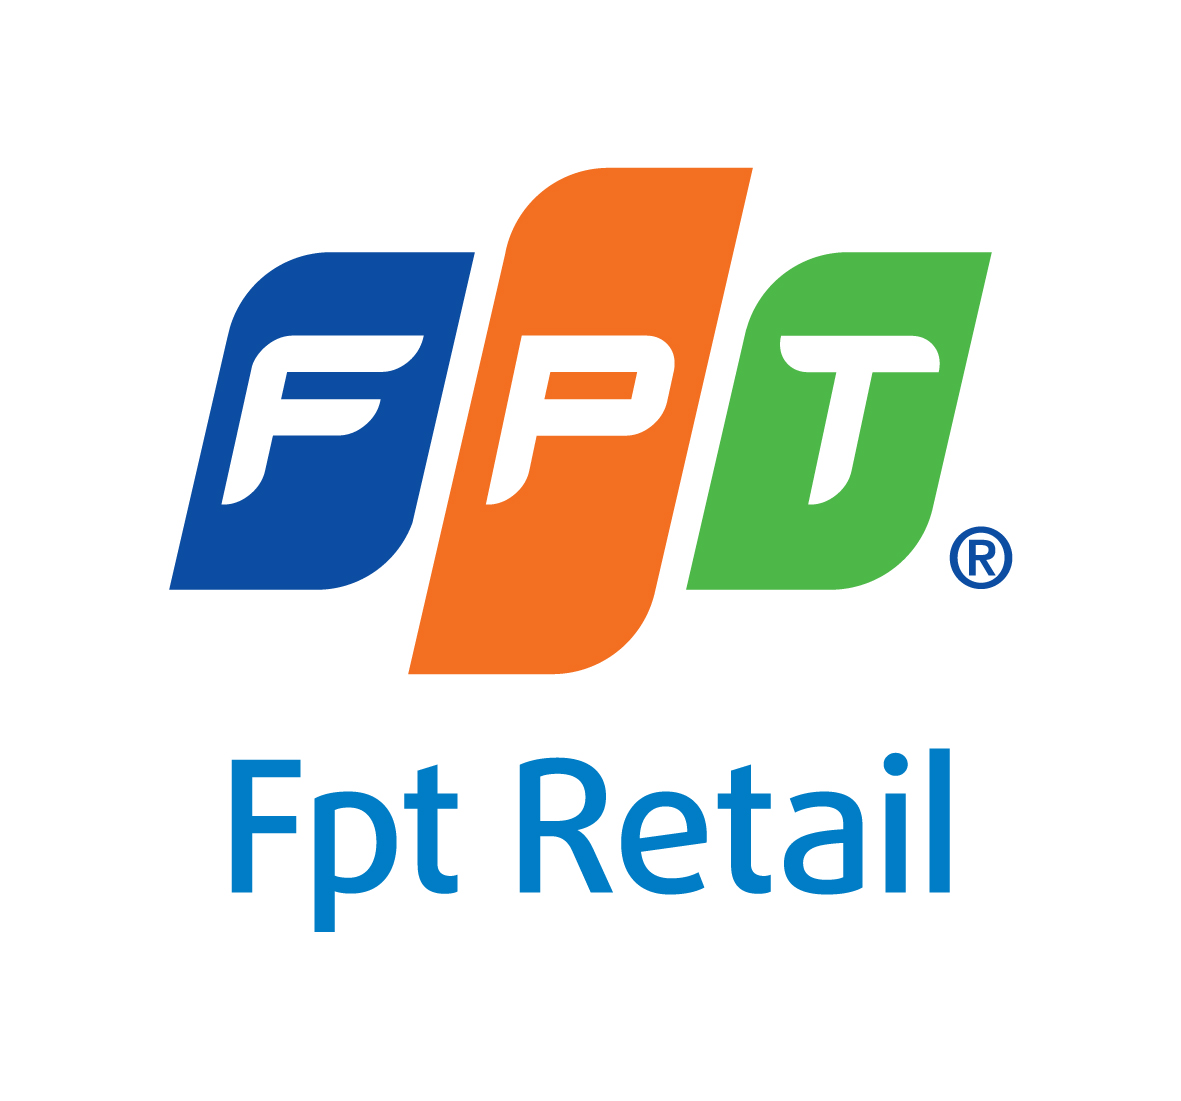 FPT Retail